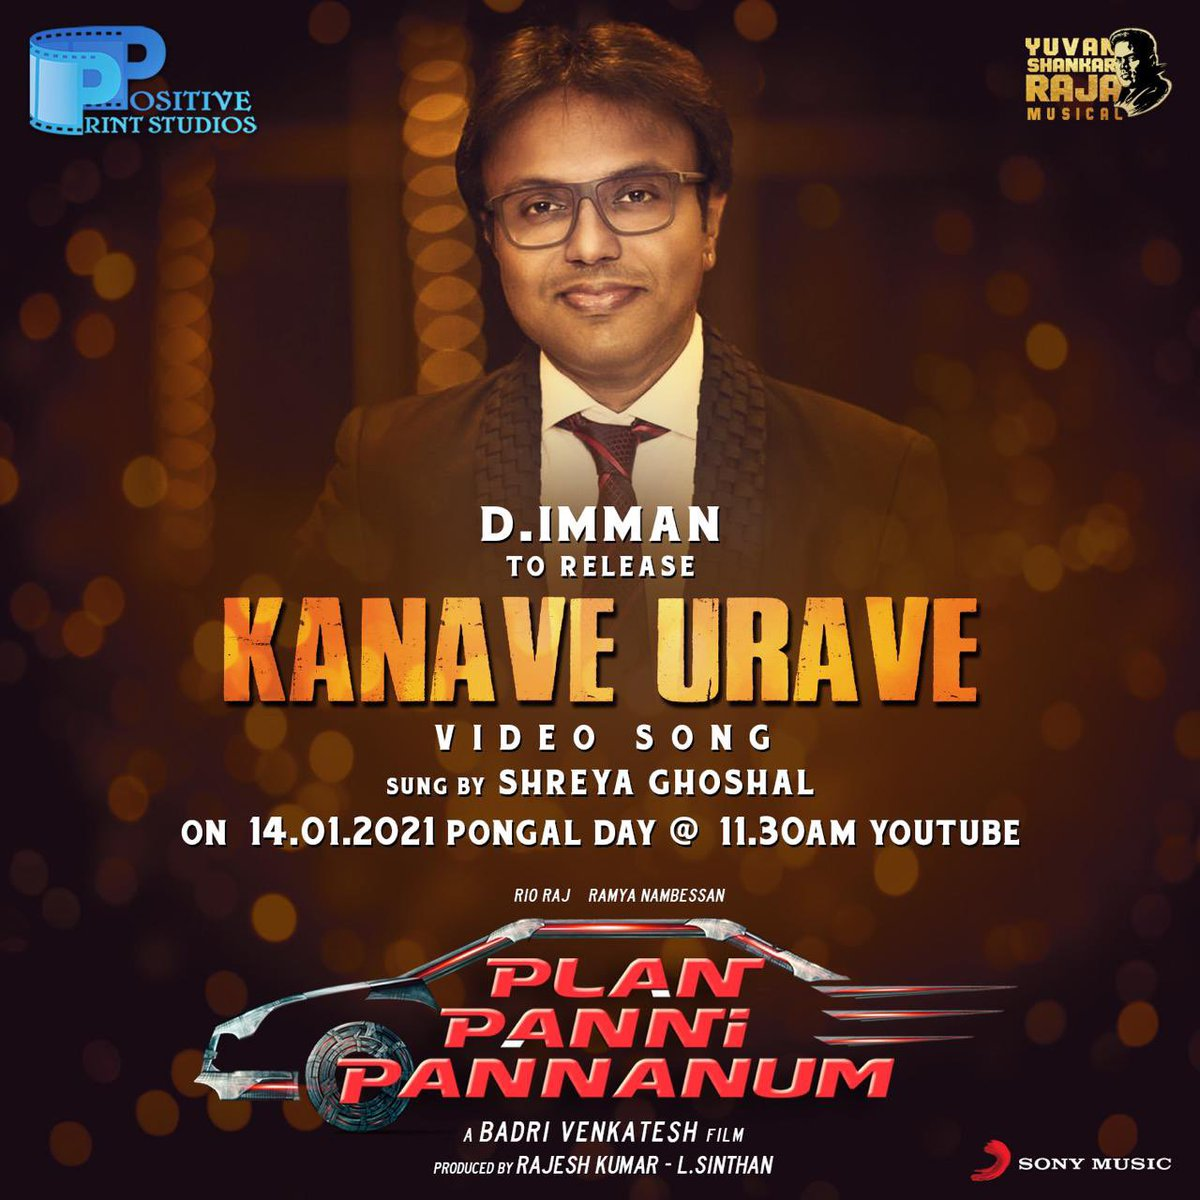 A song too close to me, speaks eloquently about a girl's dream #kanaveurave rendered  soulfully by @shreyaghoshal music by @thisisysr to be released by @immancomposer on 14th Jan 11.30 am video song from #planpannipannanum @poetniranjan @dirbadri @positiveprint_ @SonyMusicSouth